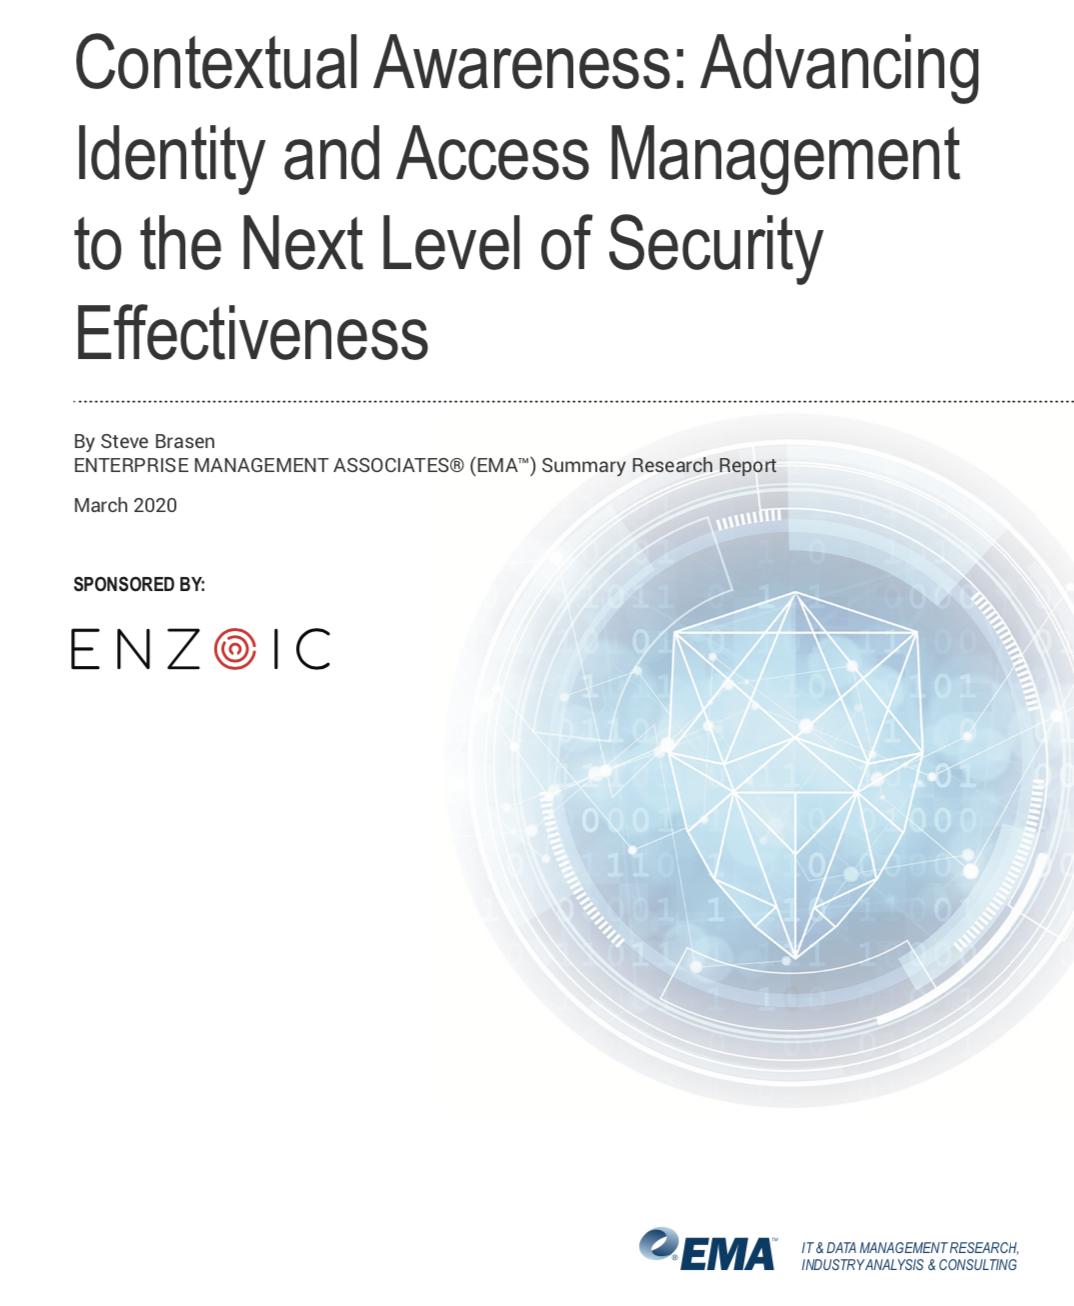 Advancing Identity and Access Management to the Next Level of Security Effectiveness